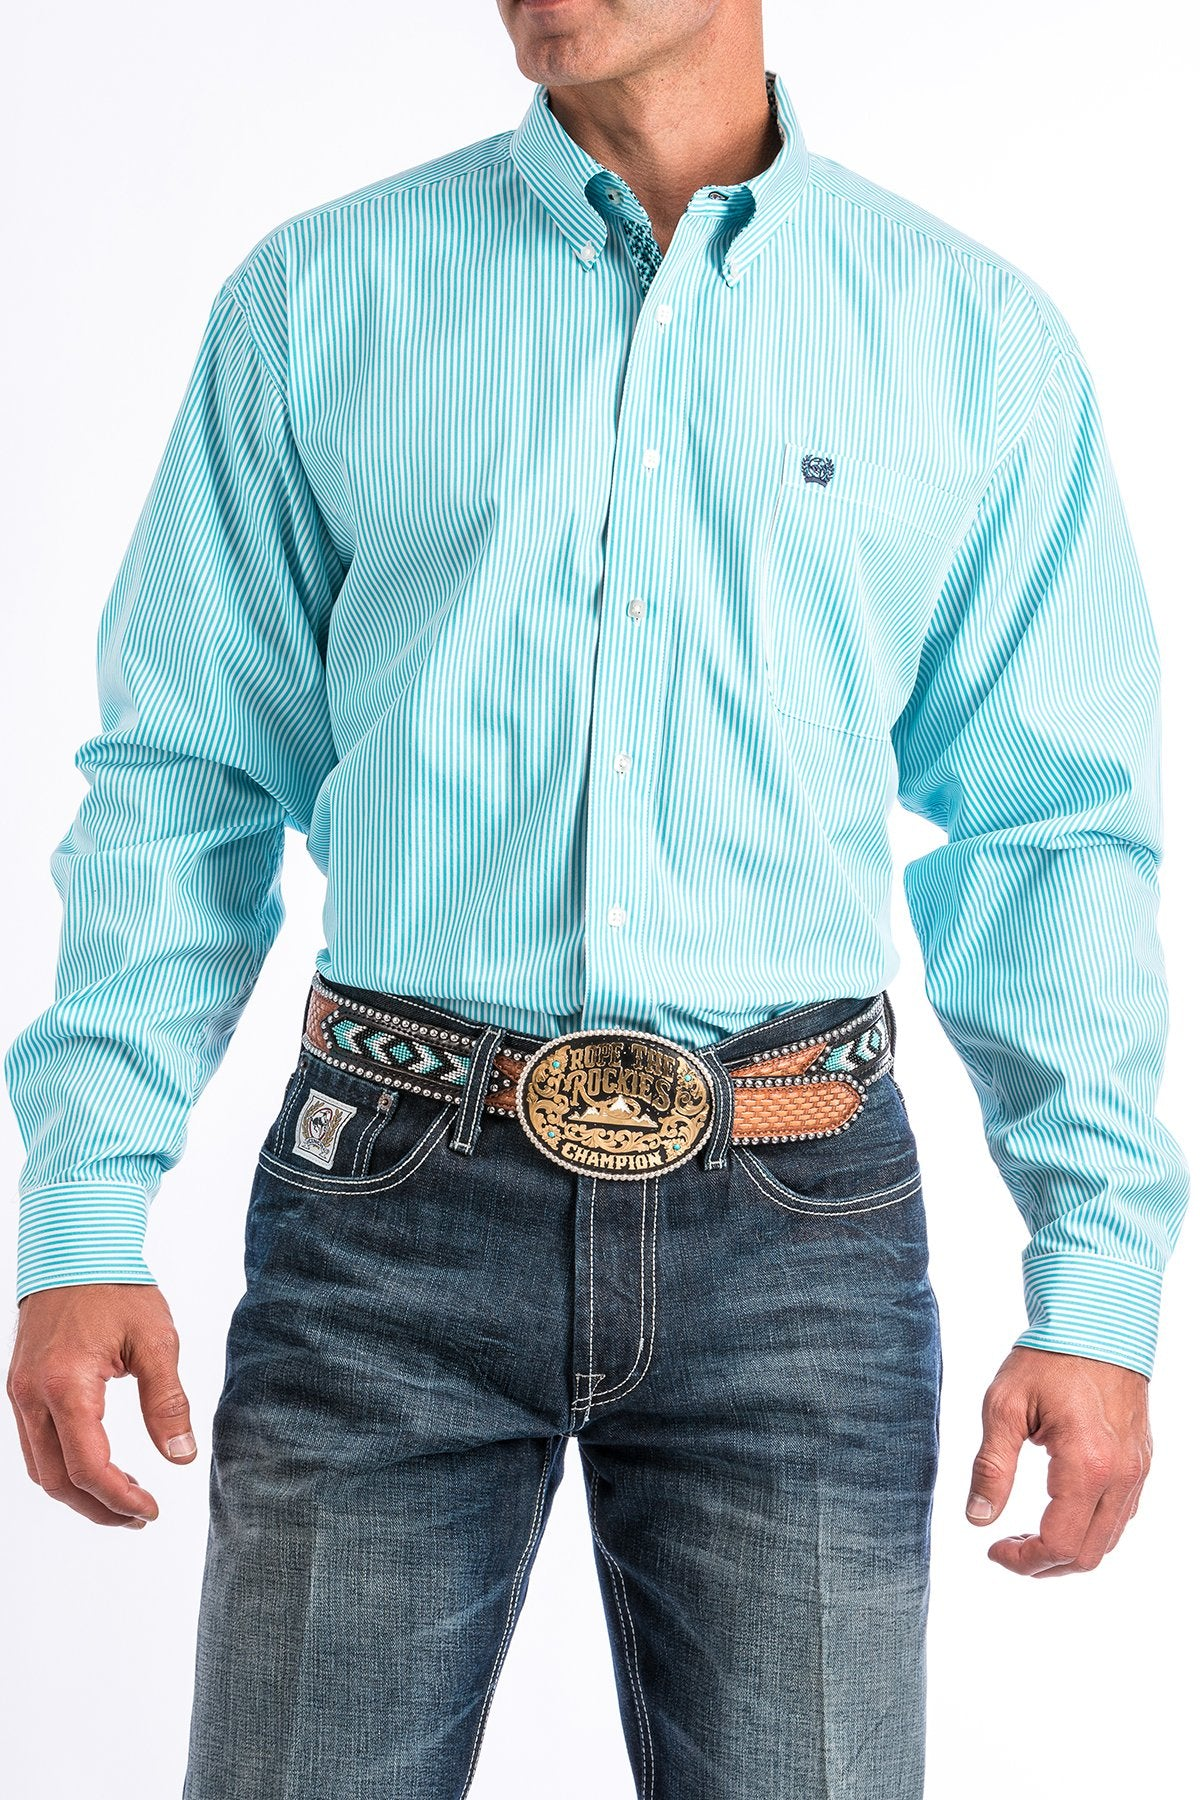 724037fb5e8f Turquoise and White Striped Western Button-Down Shirt - Adams Tack